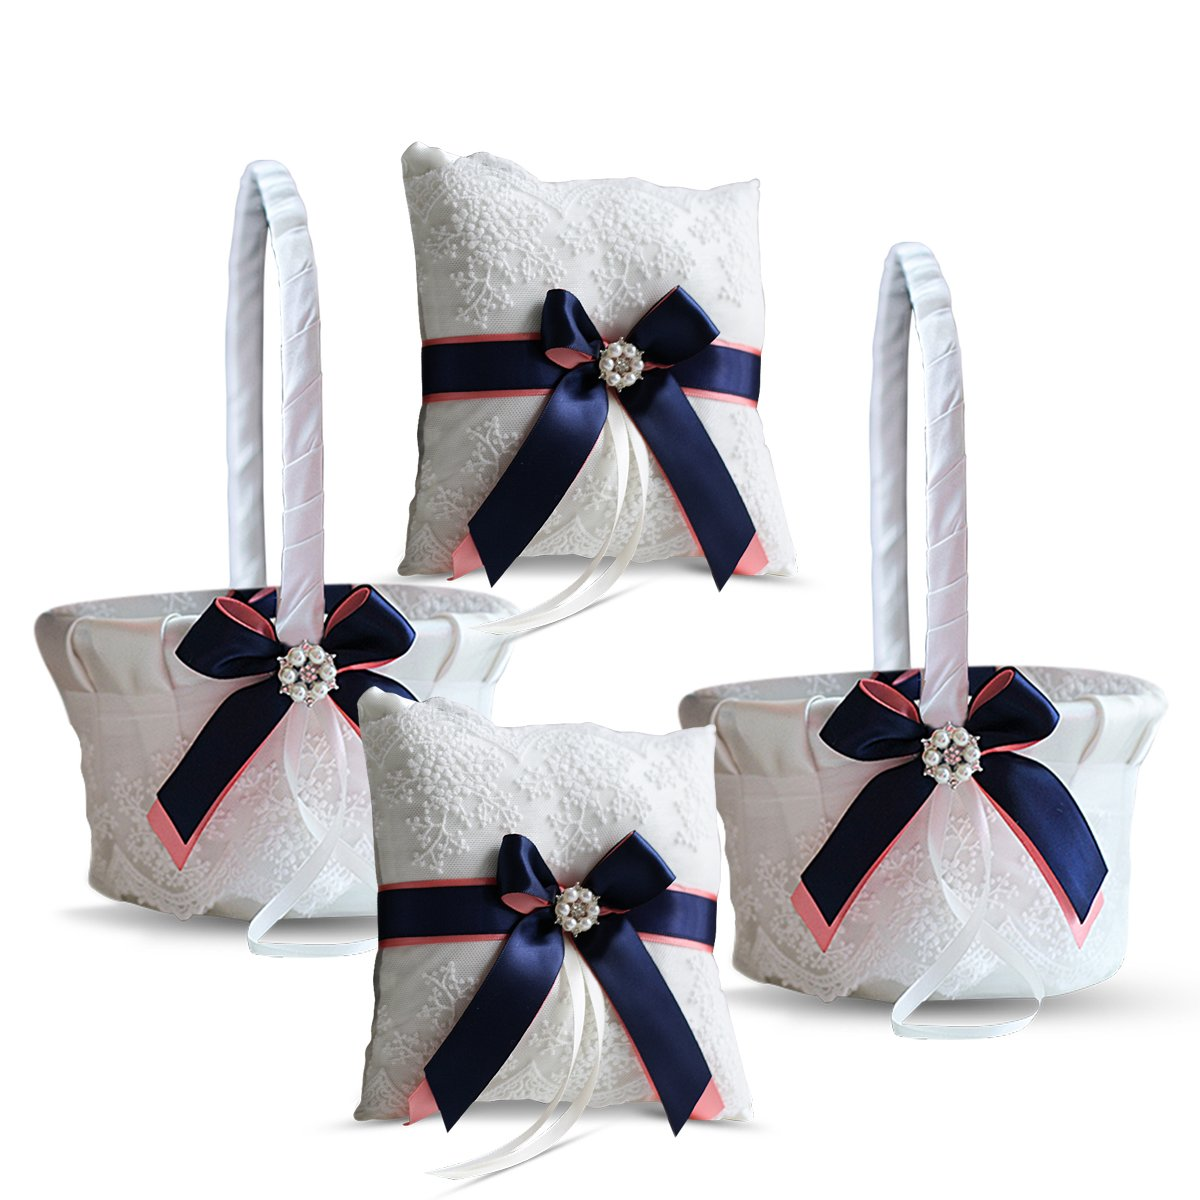 Roman Store Ivory Ring Bearer Pillow and Basket Set | Lace Collection | Flower Girl & Welcome Basket for Guest | Handmade Wedding Baskets & Pillows (Coral Navy Blue)